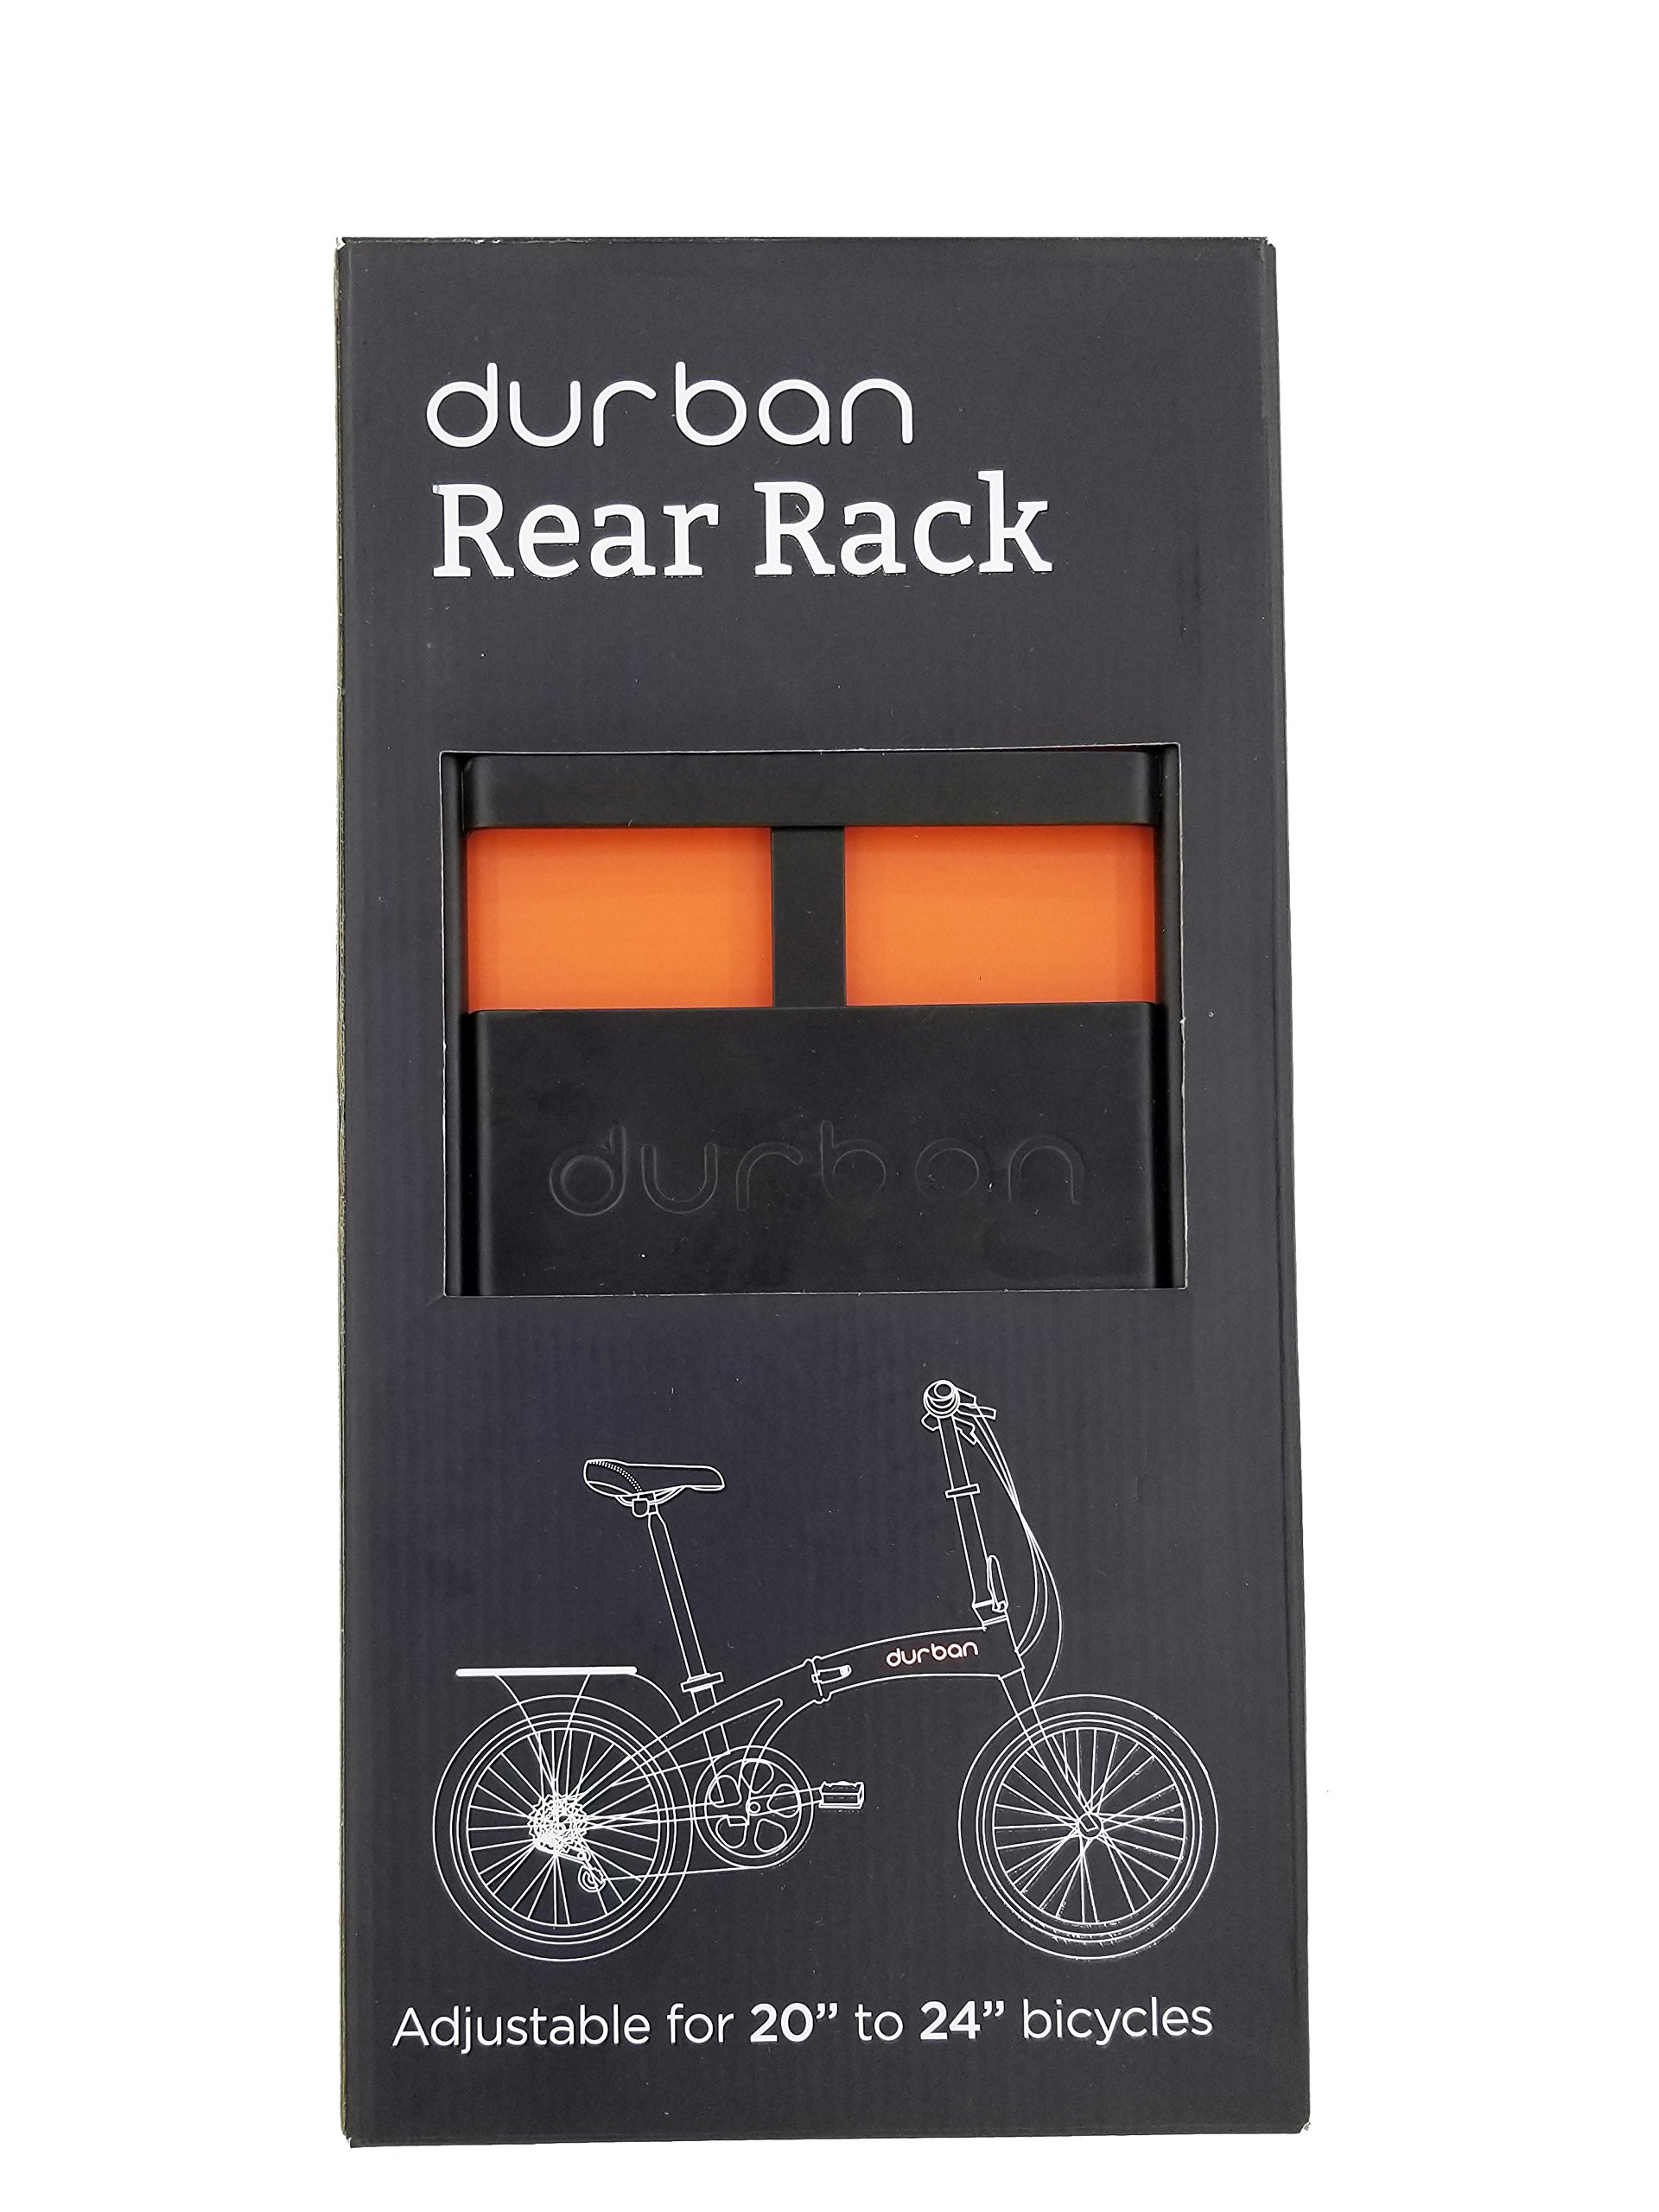 Durban Bike Rear Rack - Adjustable for 20'' Bicycles - 33Lbs Max. Load by Urban D (Image #4)